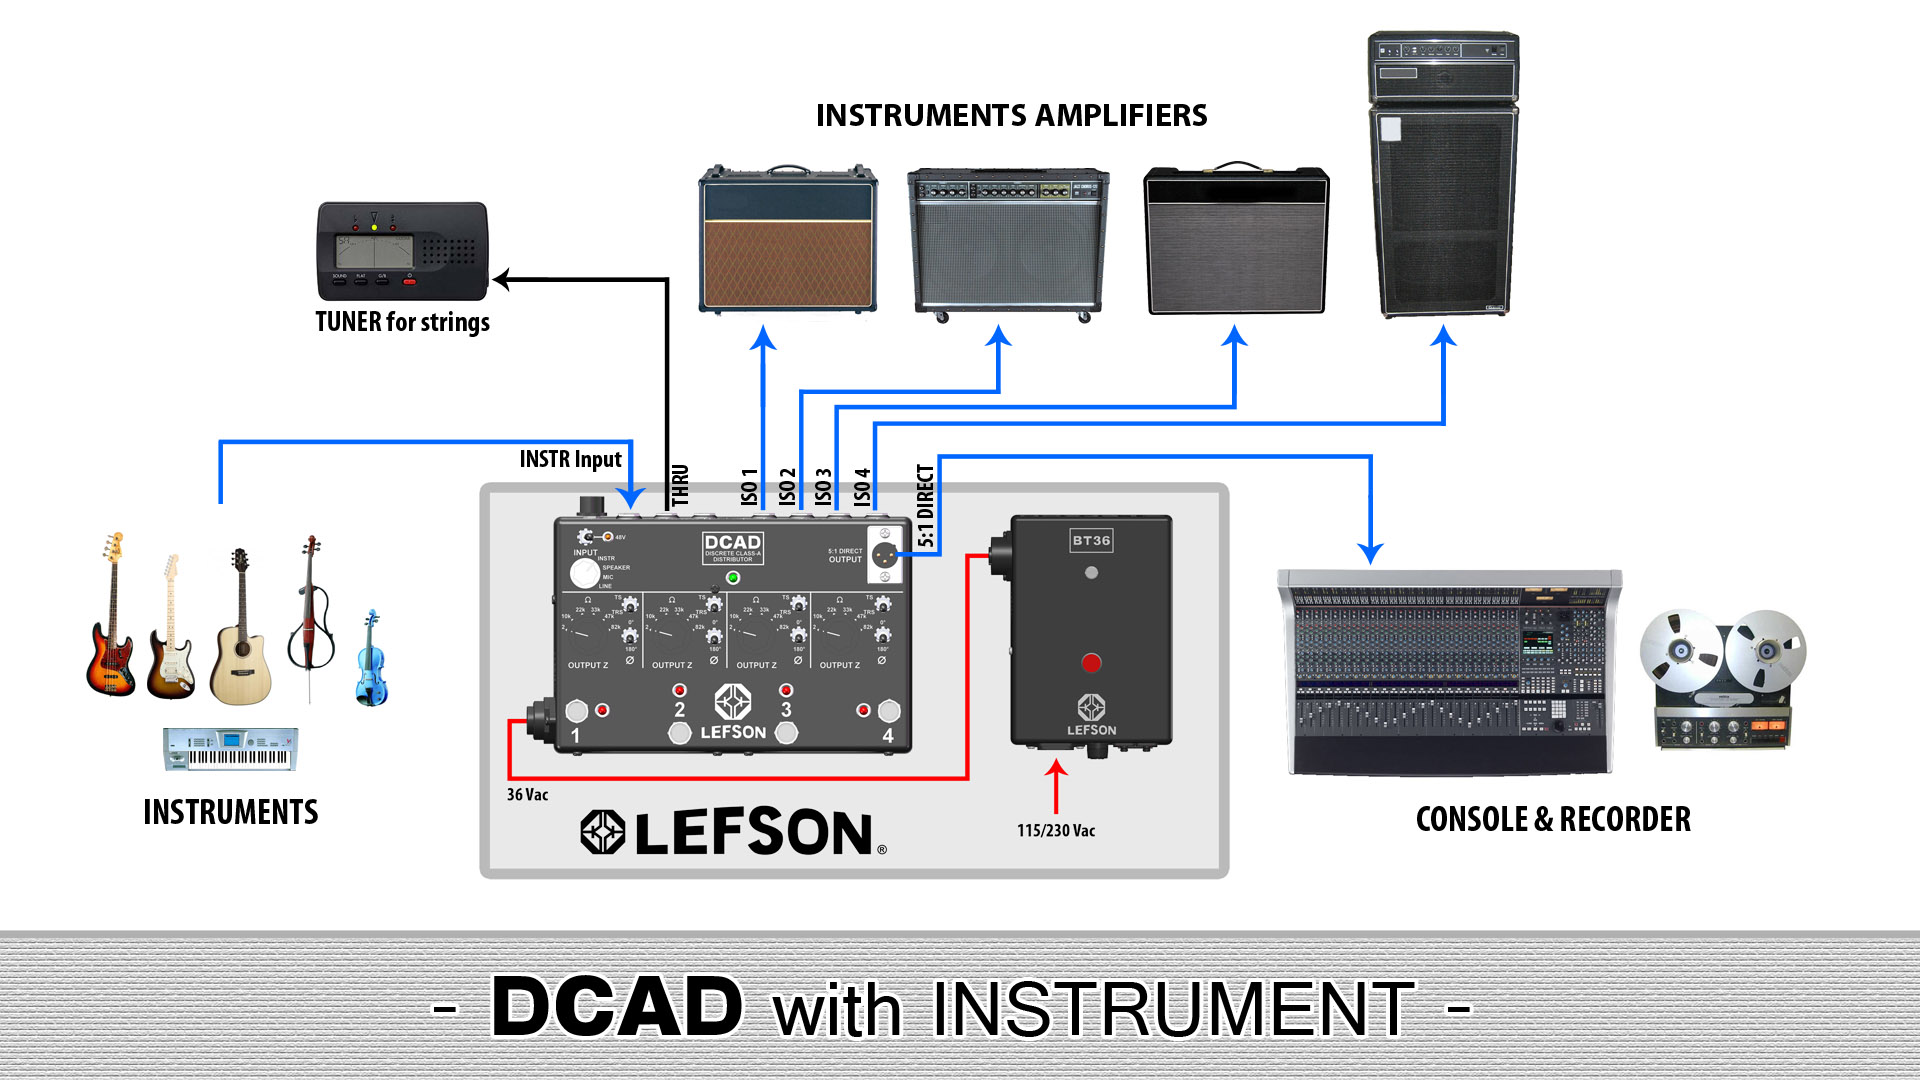 Picture of the DCAD with instrument